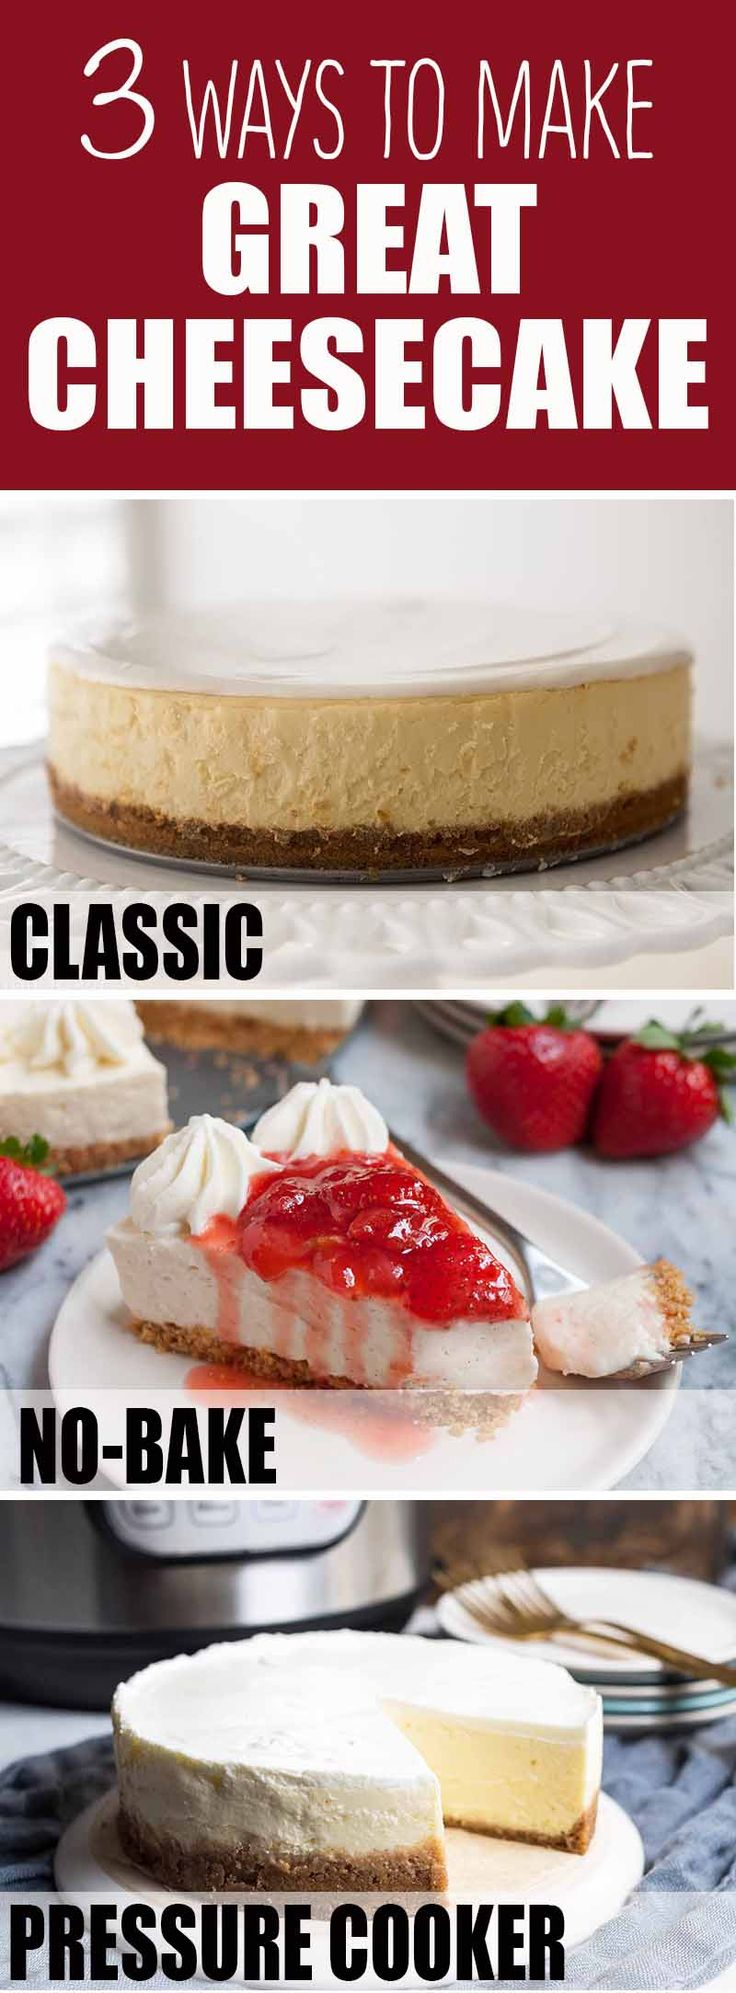 Love cheesecake? Here are three great recipes to put in your back pocket: classic cheesecake, no-bake cheesecake, and pressure cooker cheesecake! #cheesecake #dessert #holiday